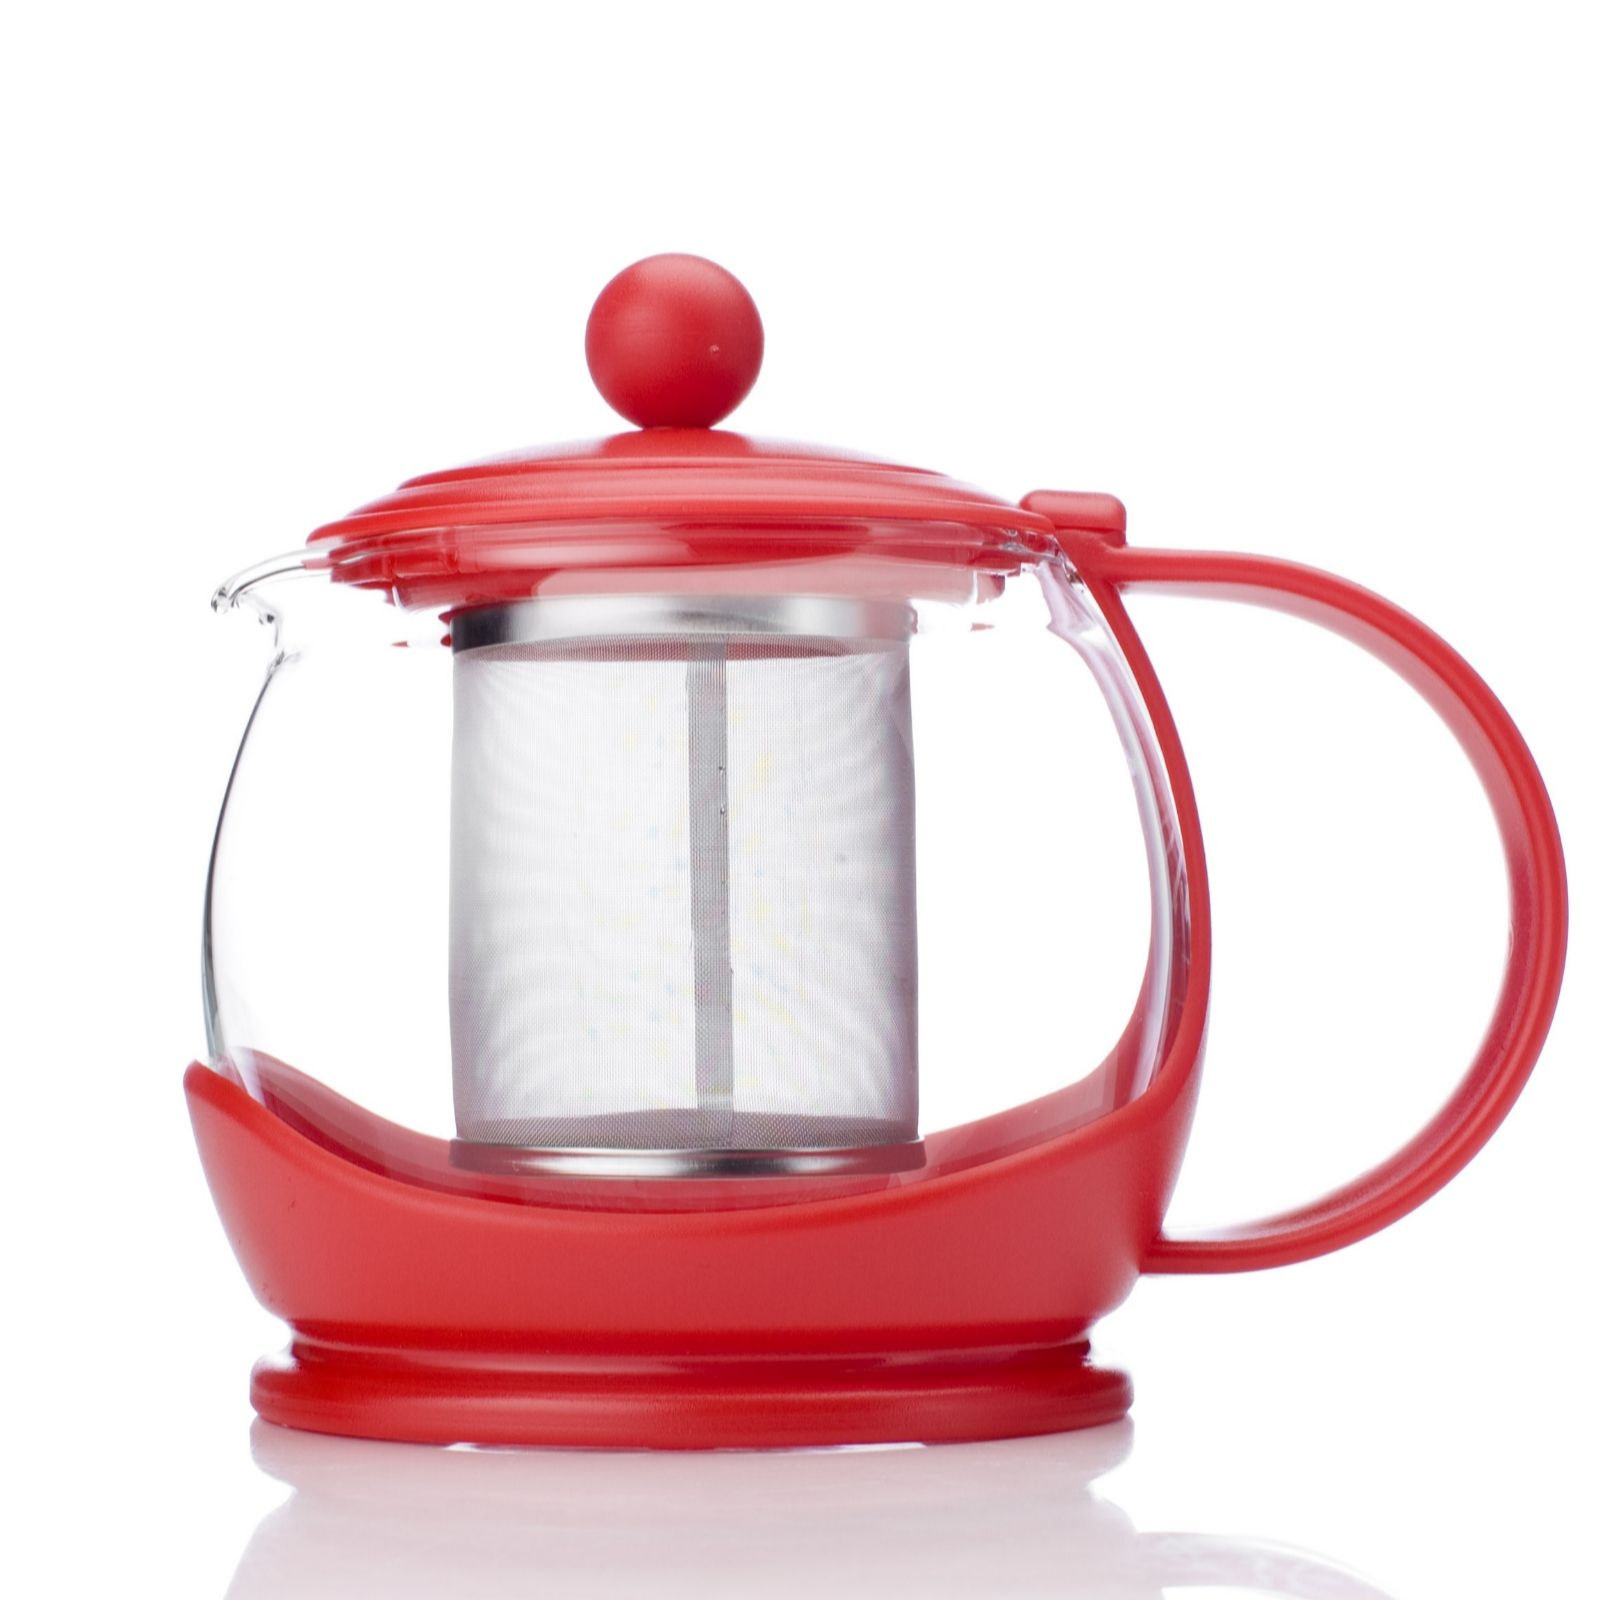 Prepology Prosperity 700ml Teapot with Infuser by cooks essentials ...